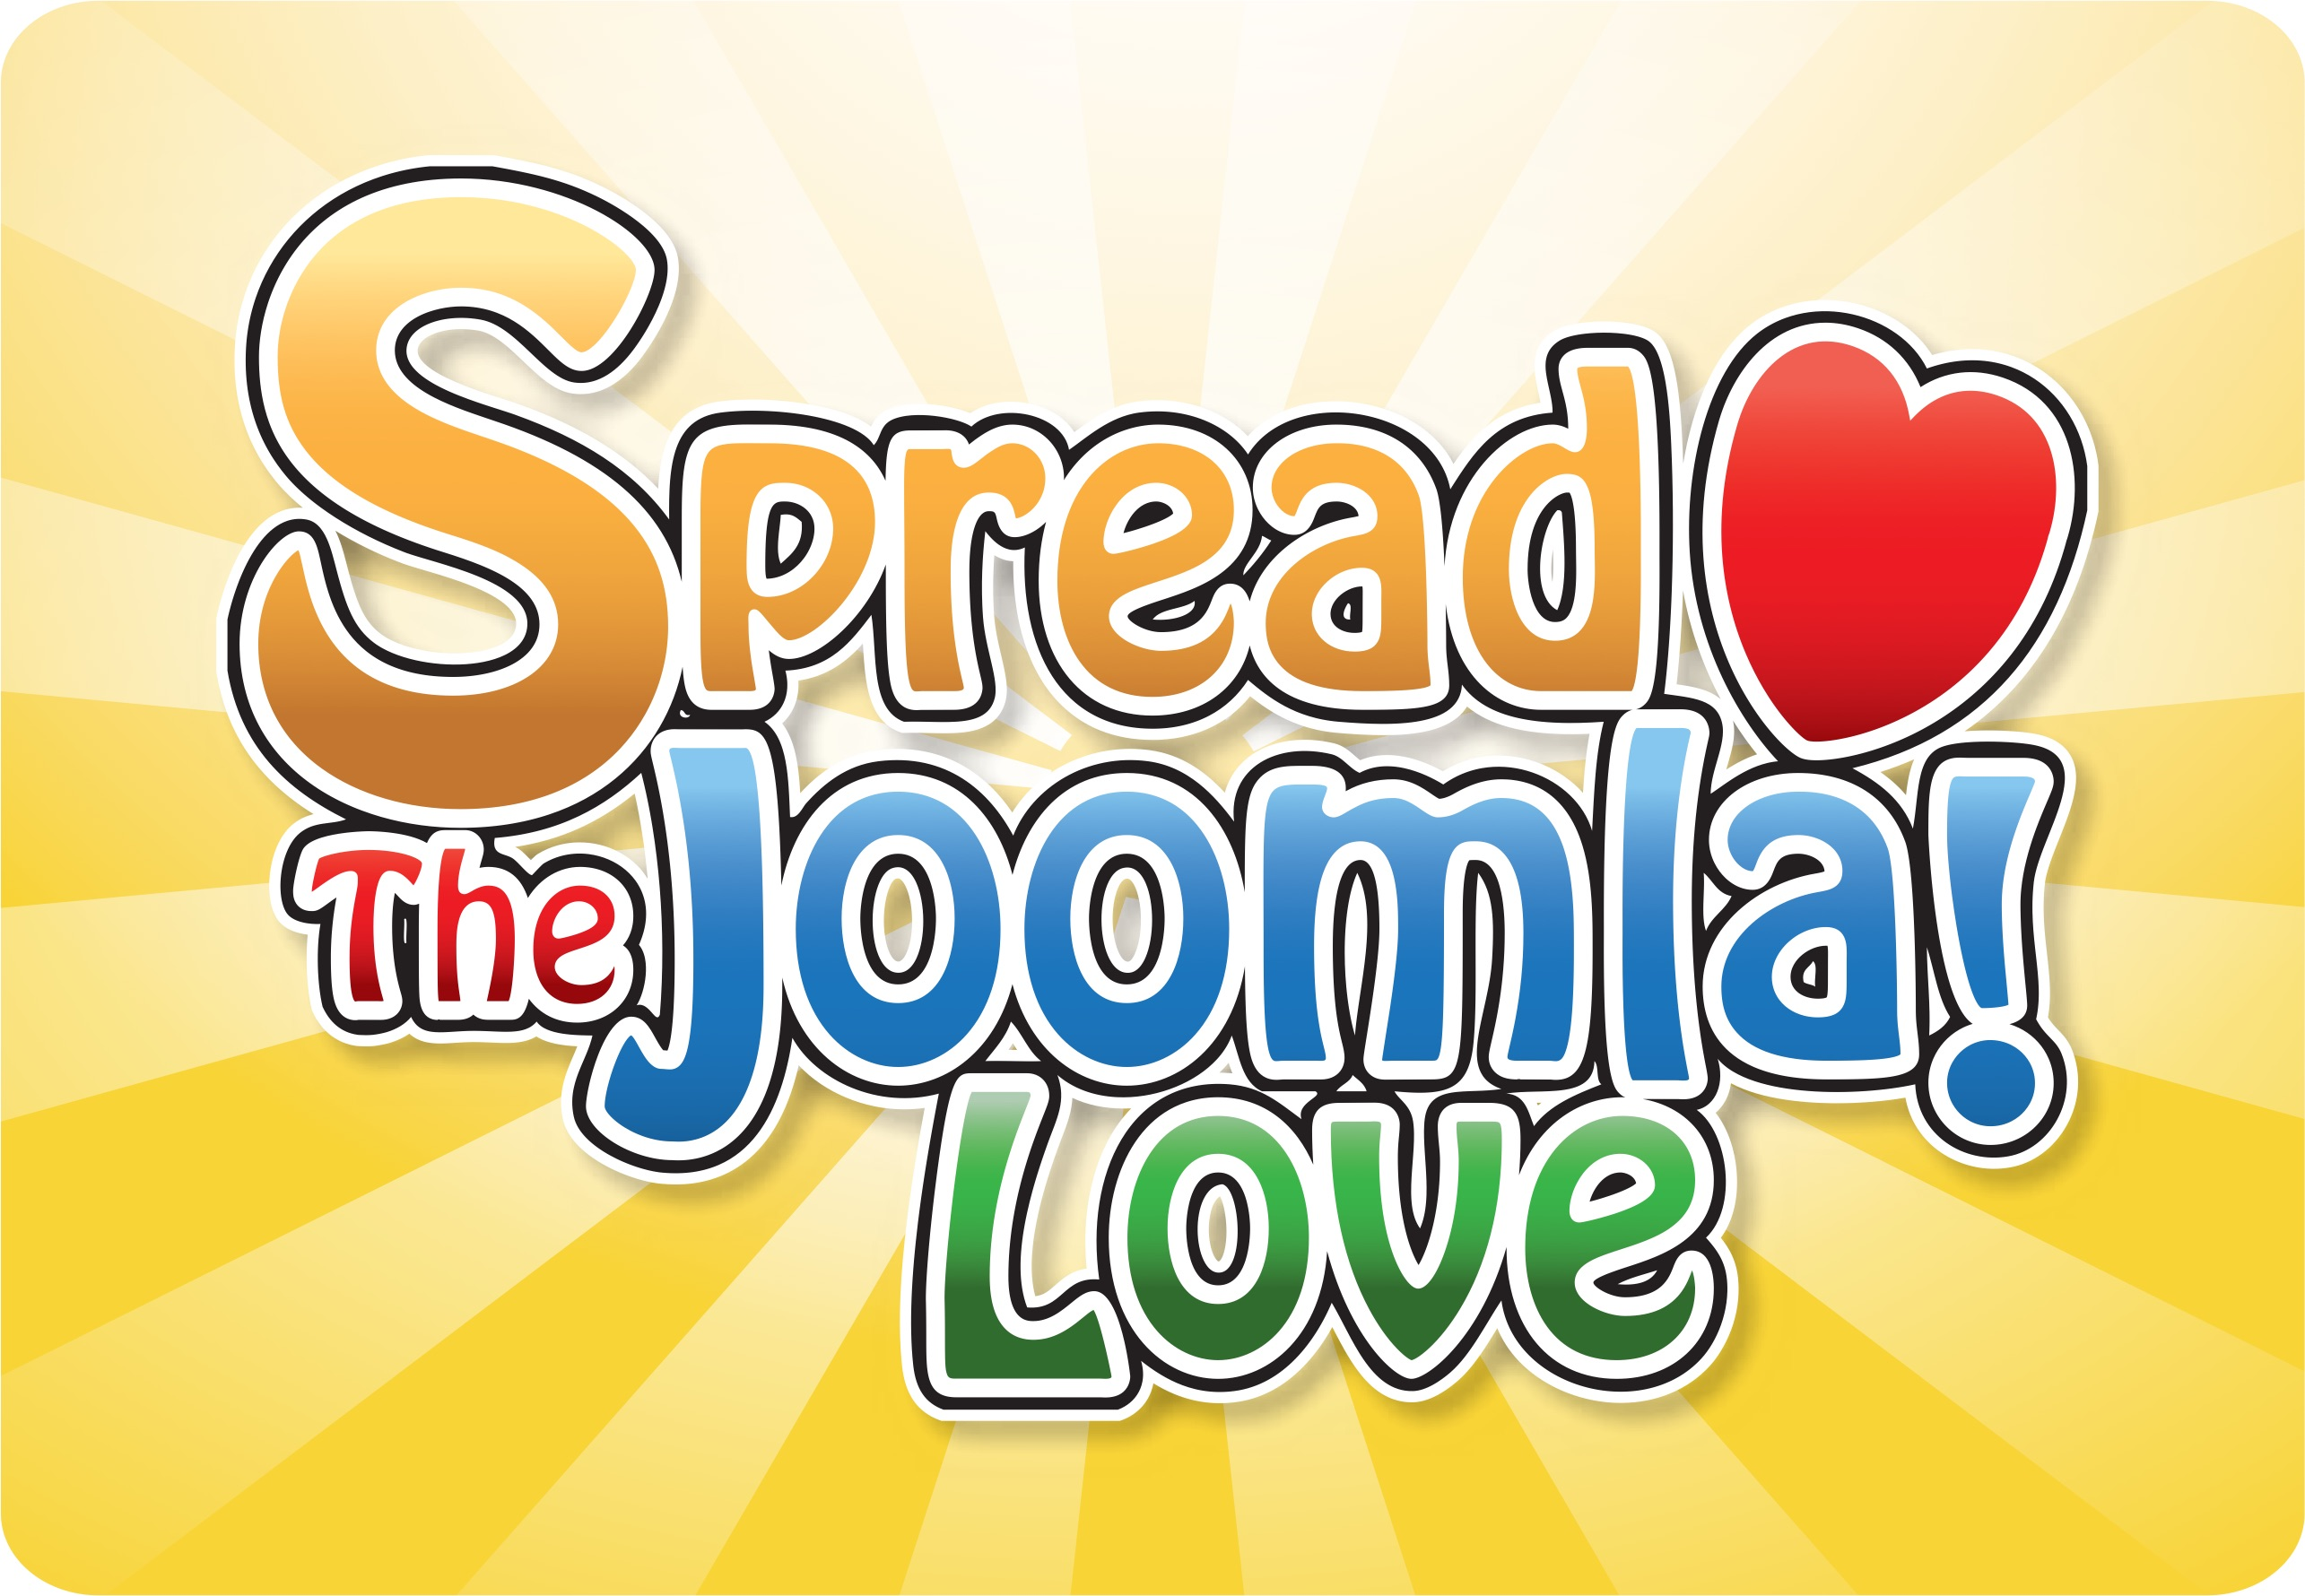 Spread The Joomla! Love